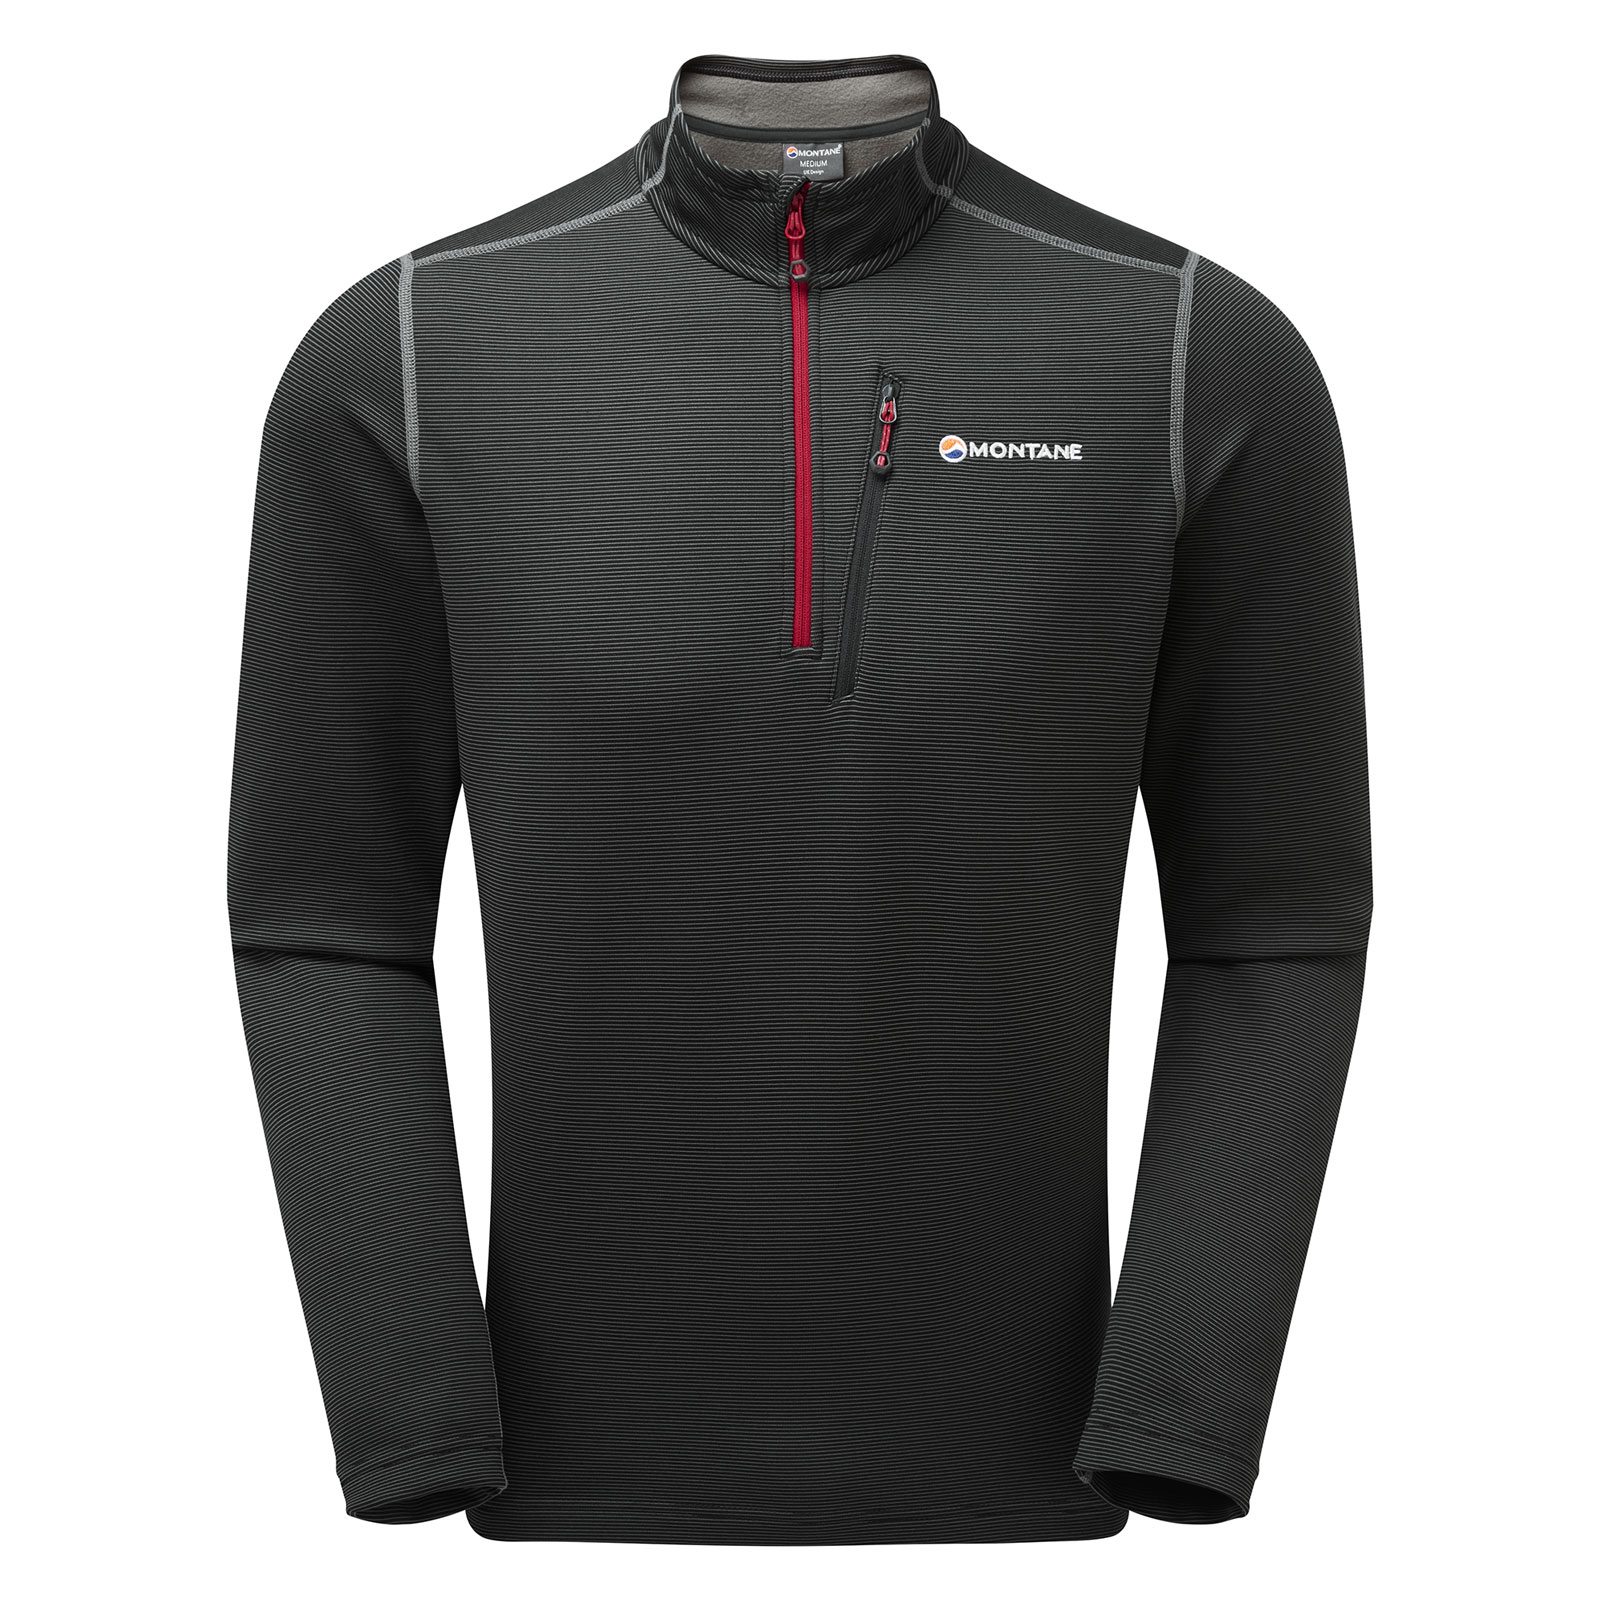 Montane Mens Dragon Pull-On Top Black Sports Running Warm Breathable Reflective